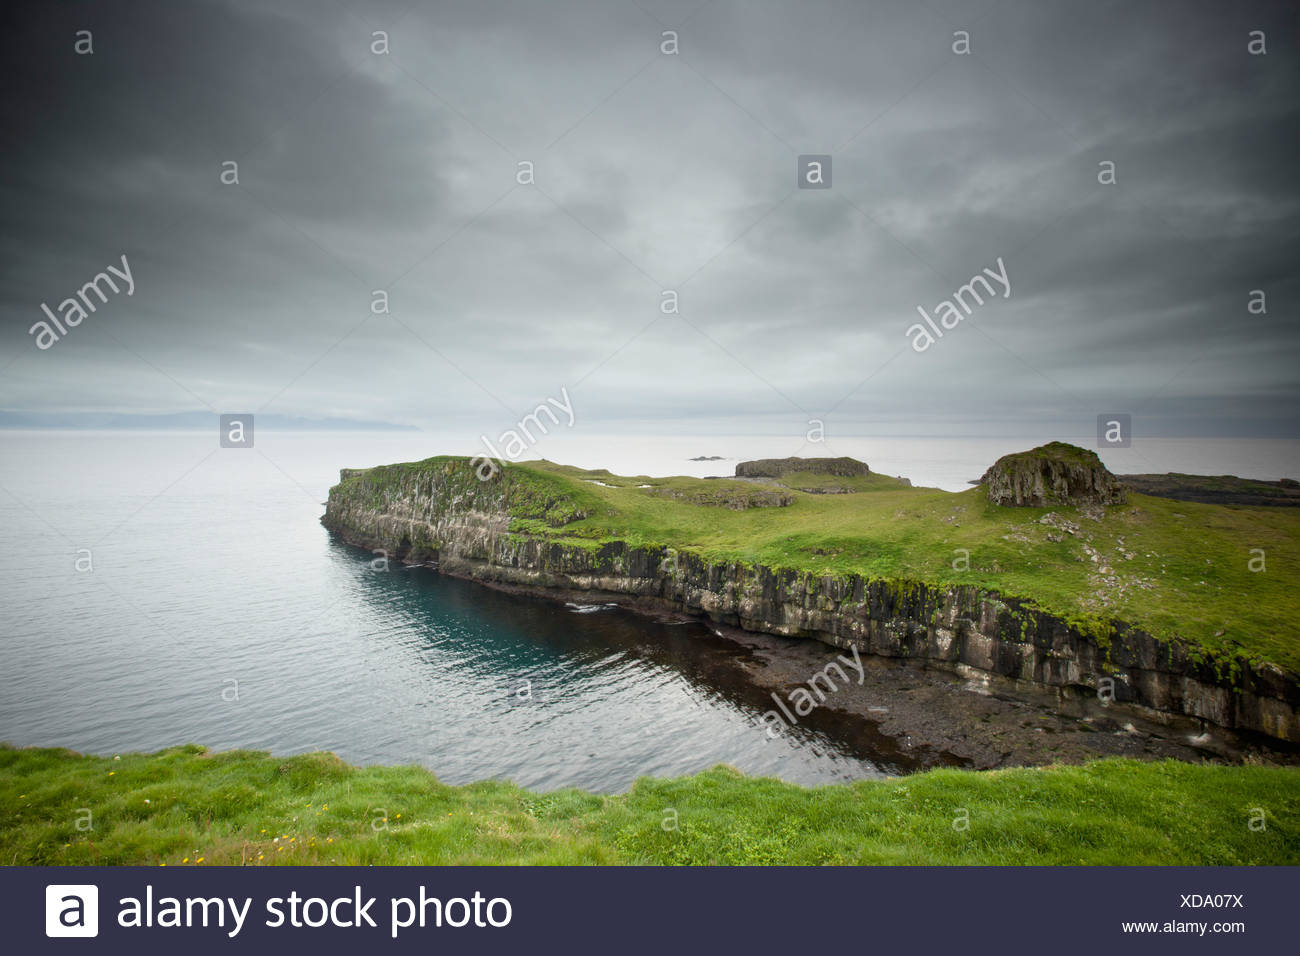 A Rock Ledge Along The Shoreline Under Dark Clouds; Papey Island Iceland - Stock Image